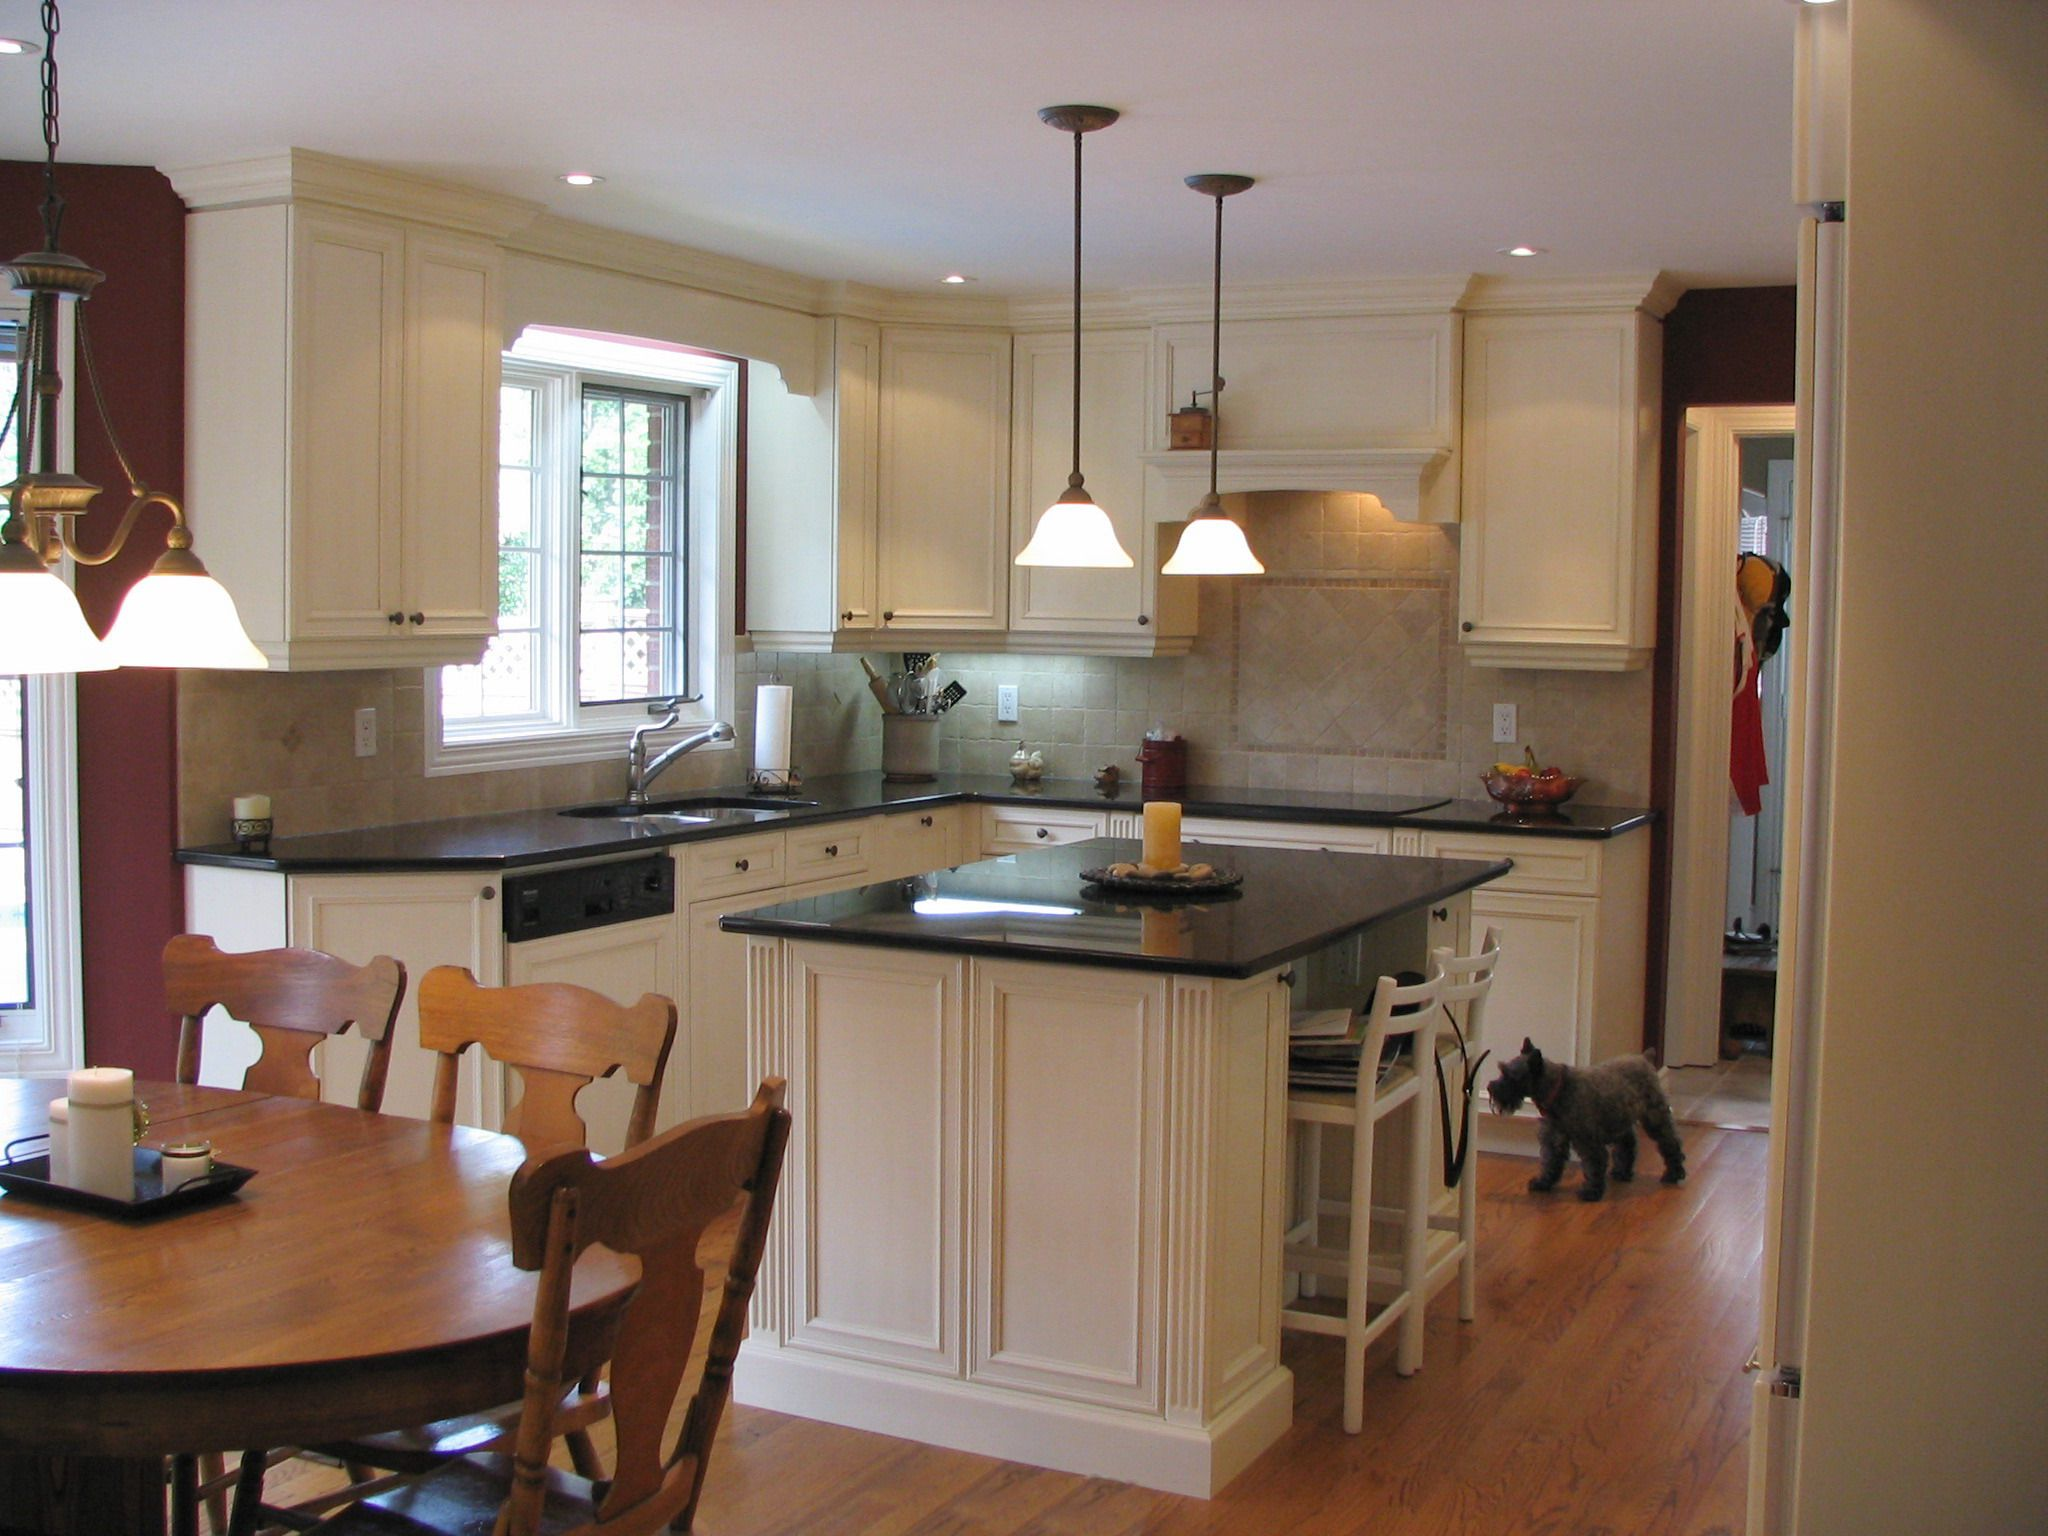 Kitchen Craft Chatham Maple Cabinets, Millstone Brushed White Lacquer  Finish, Cambrian Black Countertops (